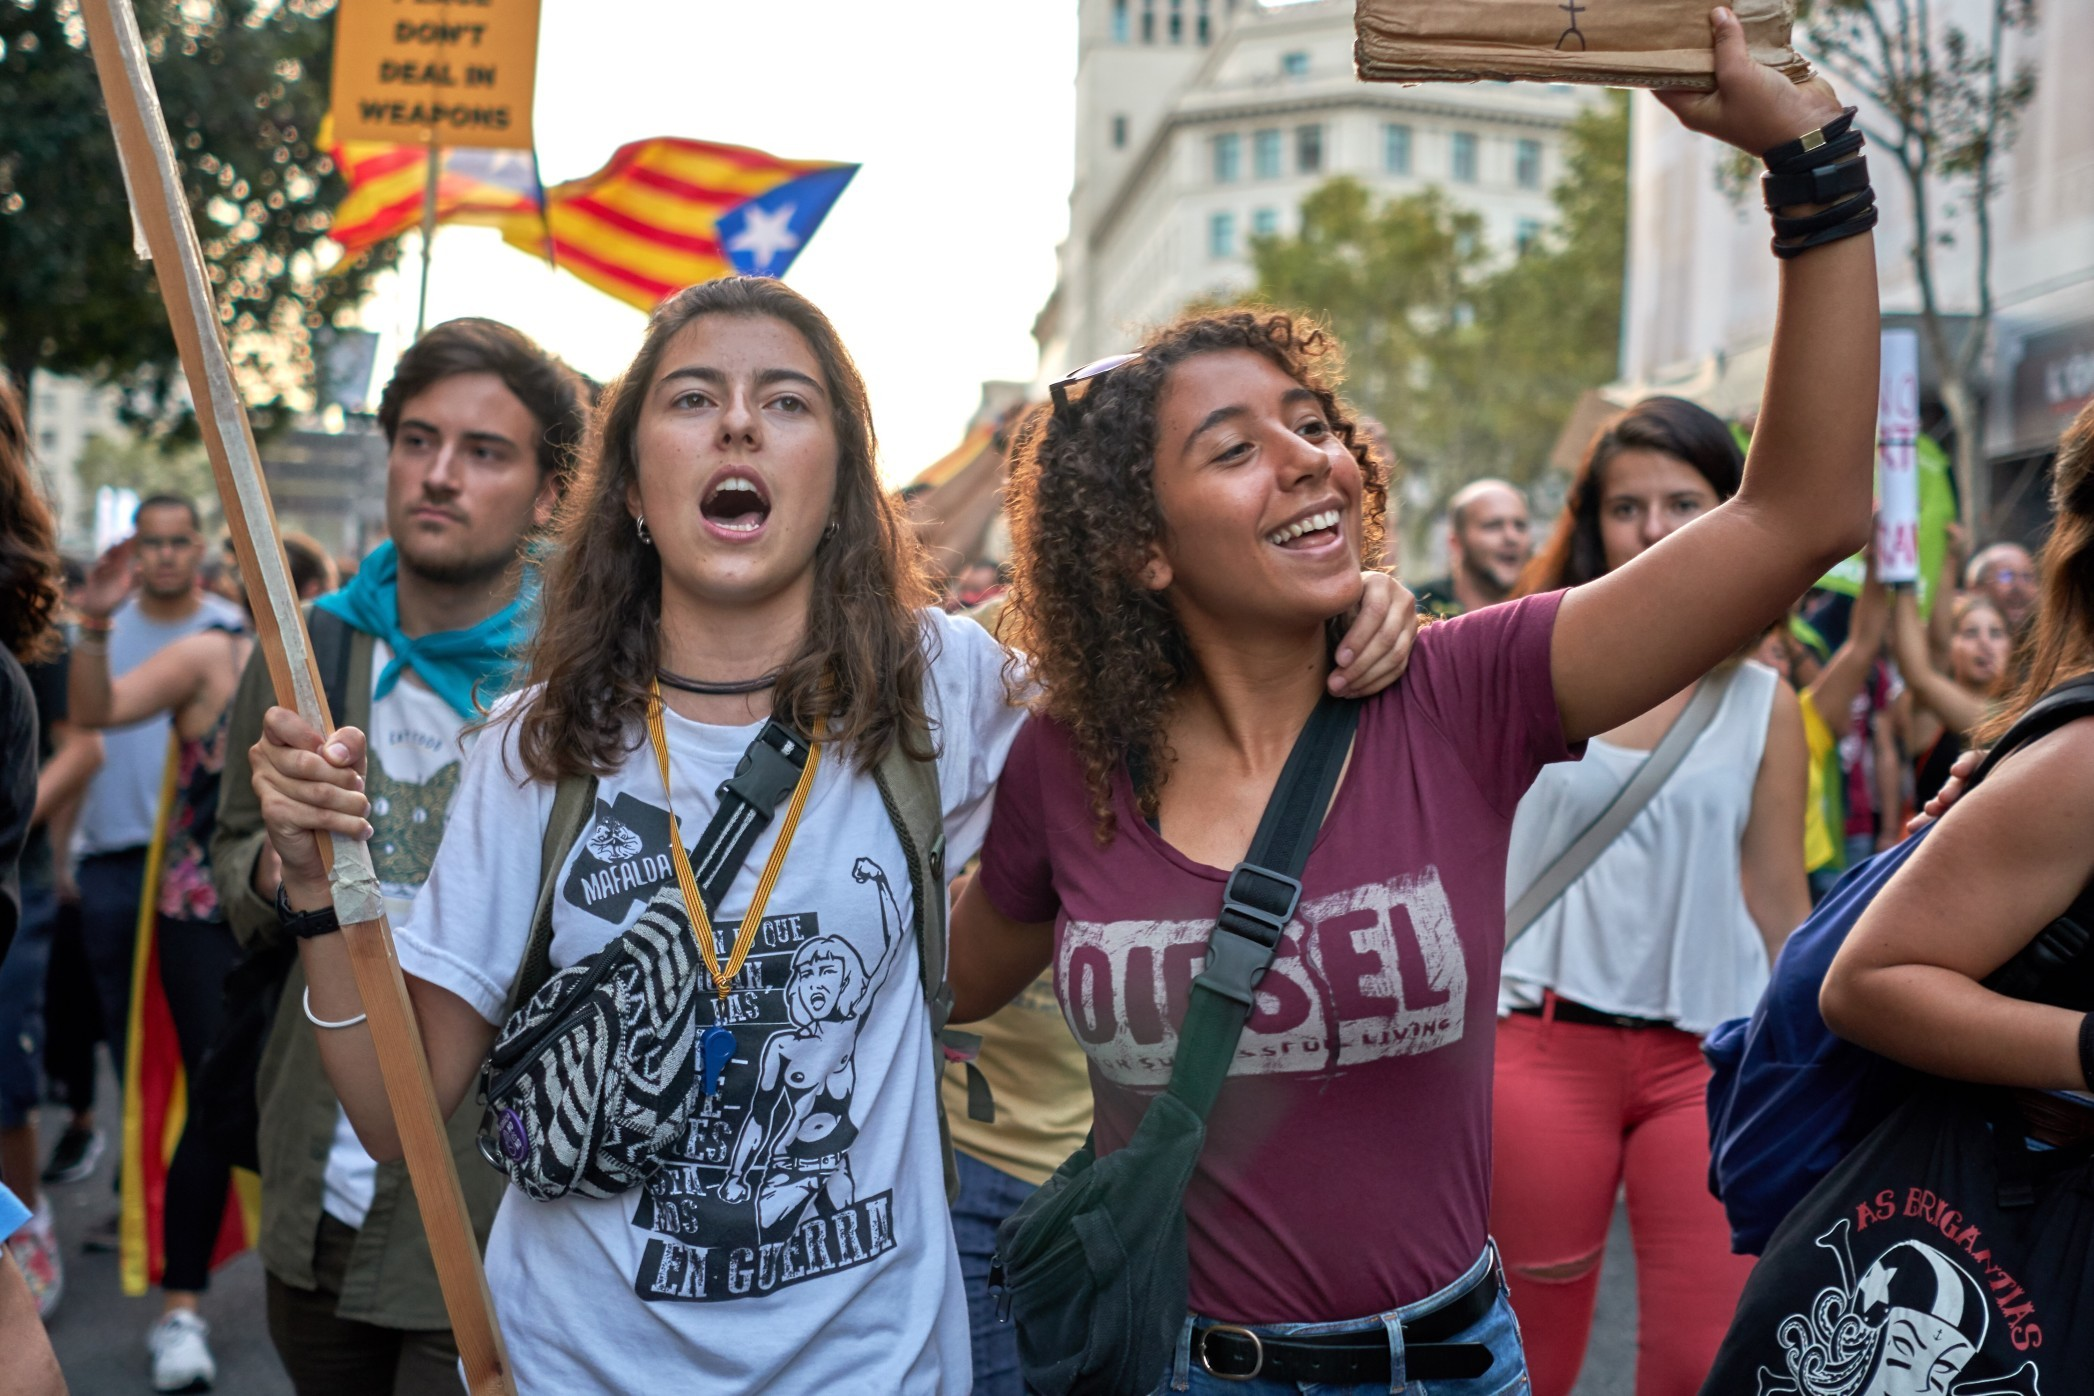 Freedom for catalonia t20 a7 L116